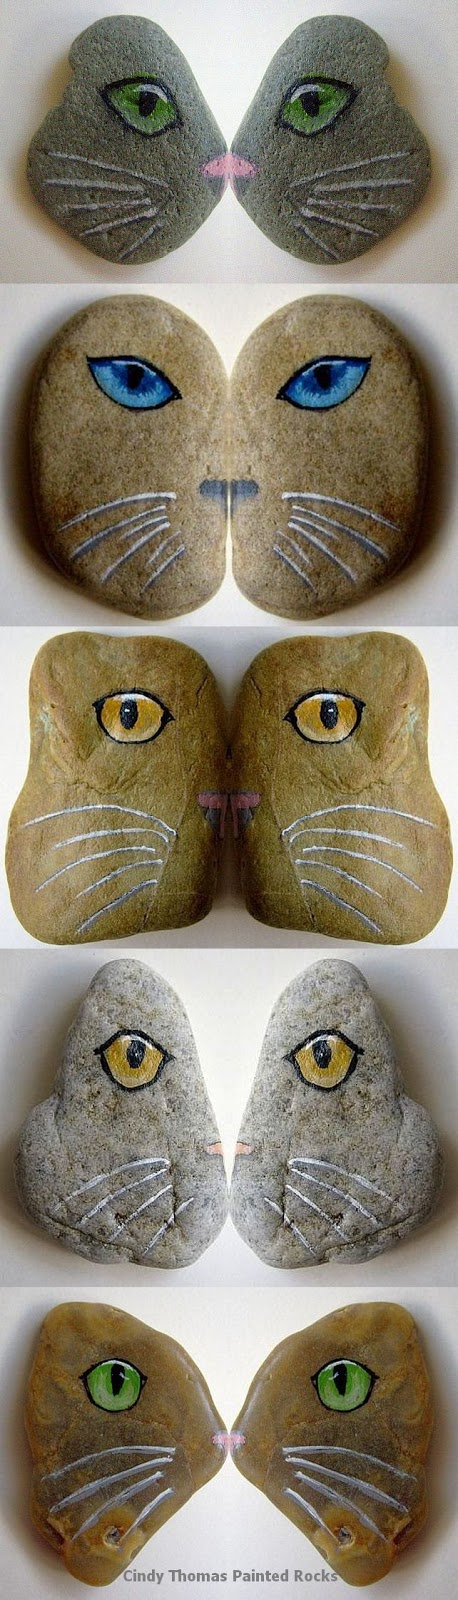 painted rocks, cats, kitties, stones, rock painting, Cindy Thomas